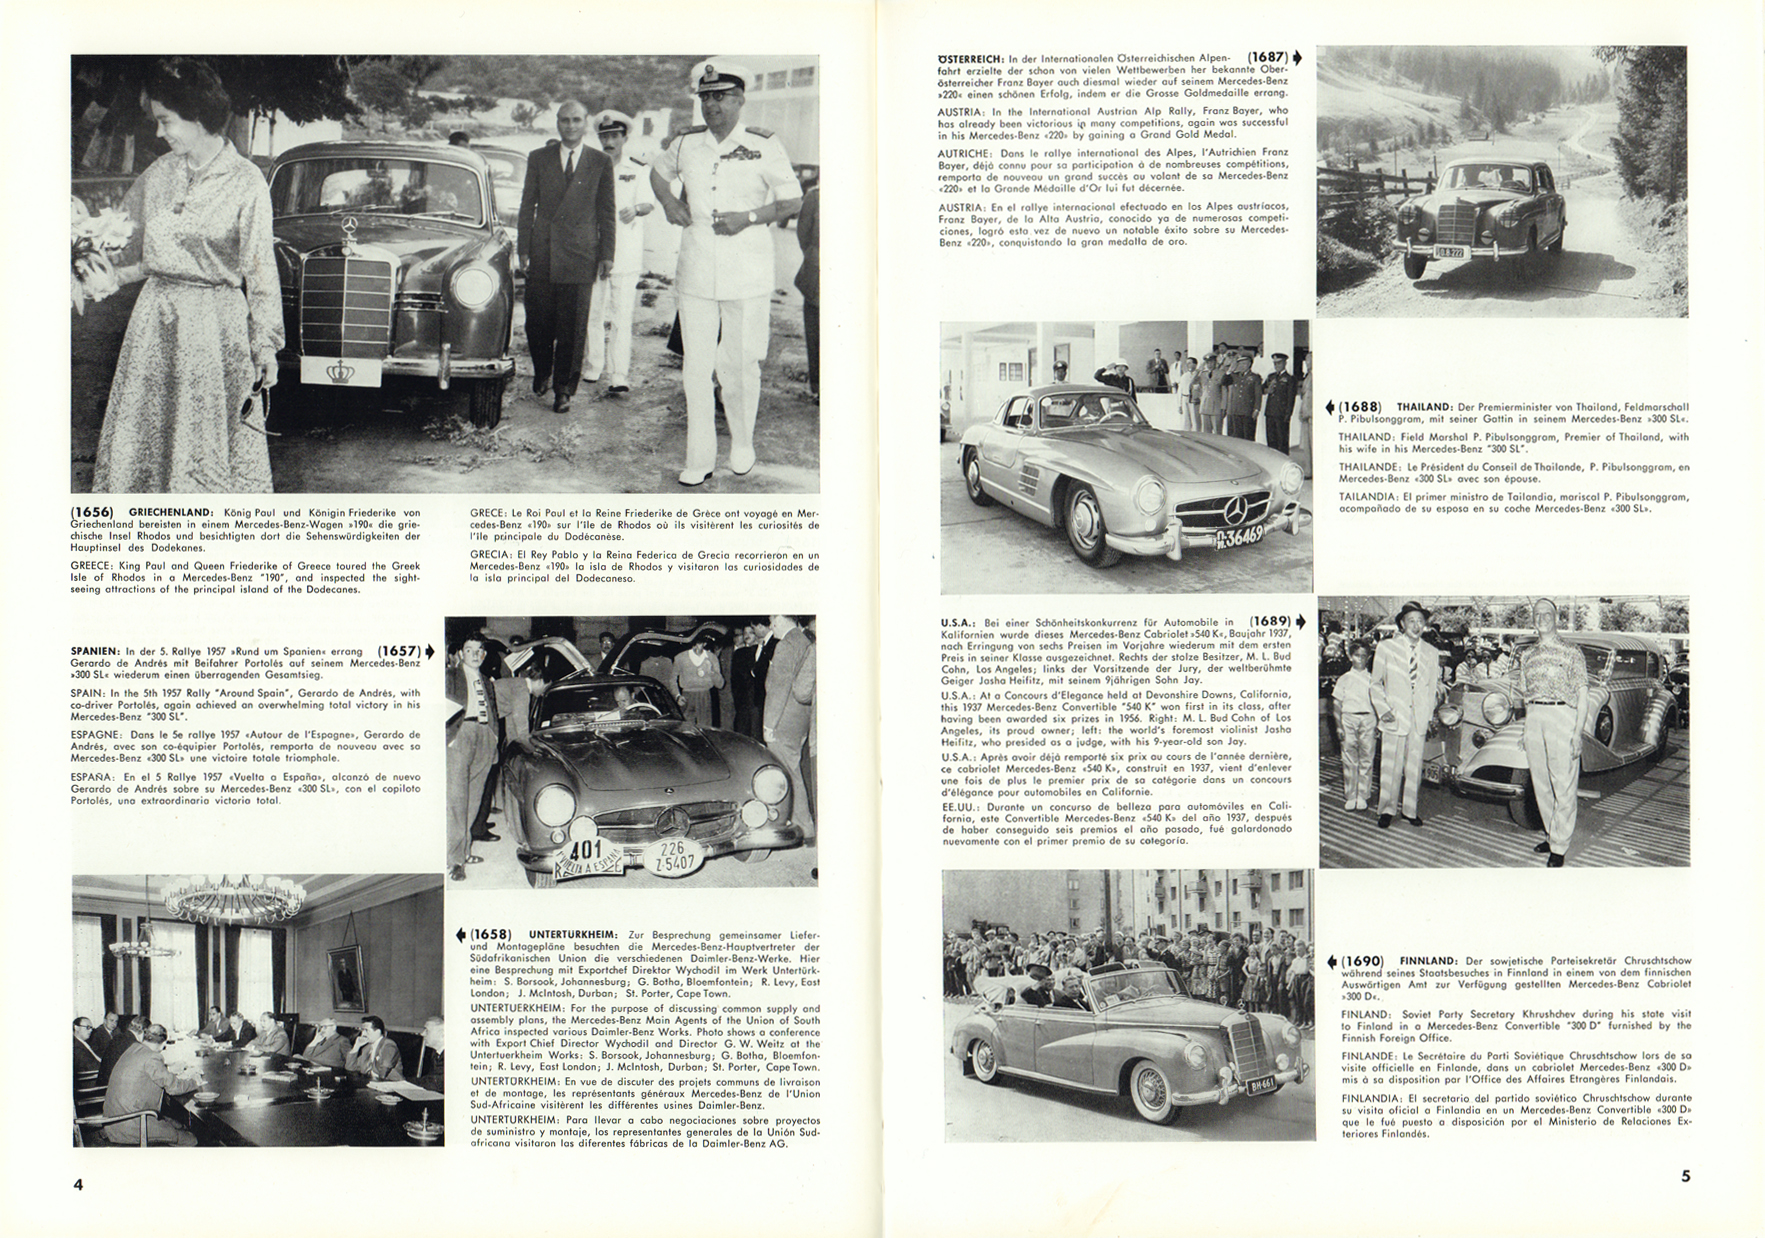 (REVISTA): Periódico In aller welt n.º 12 - Mercedes-Benz no mundo - 1957 - multilingue 003